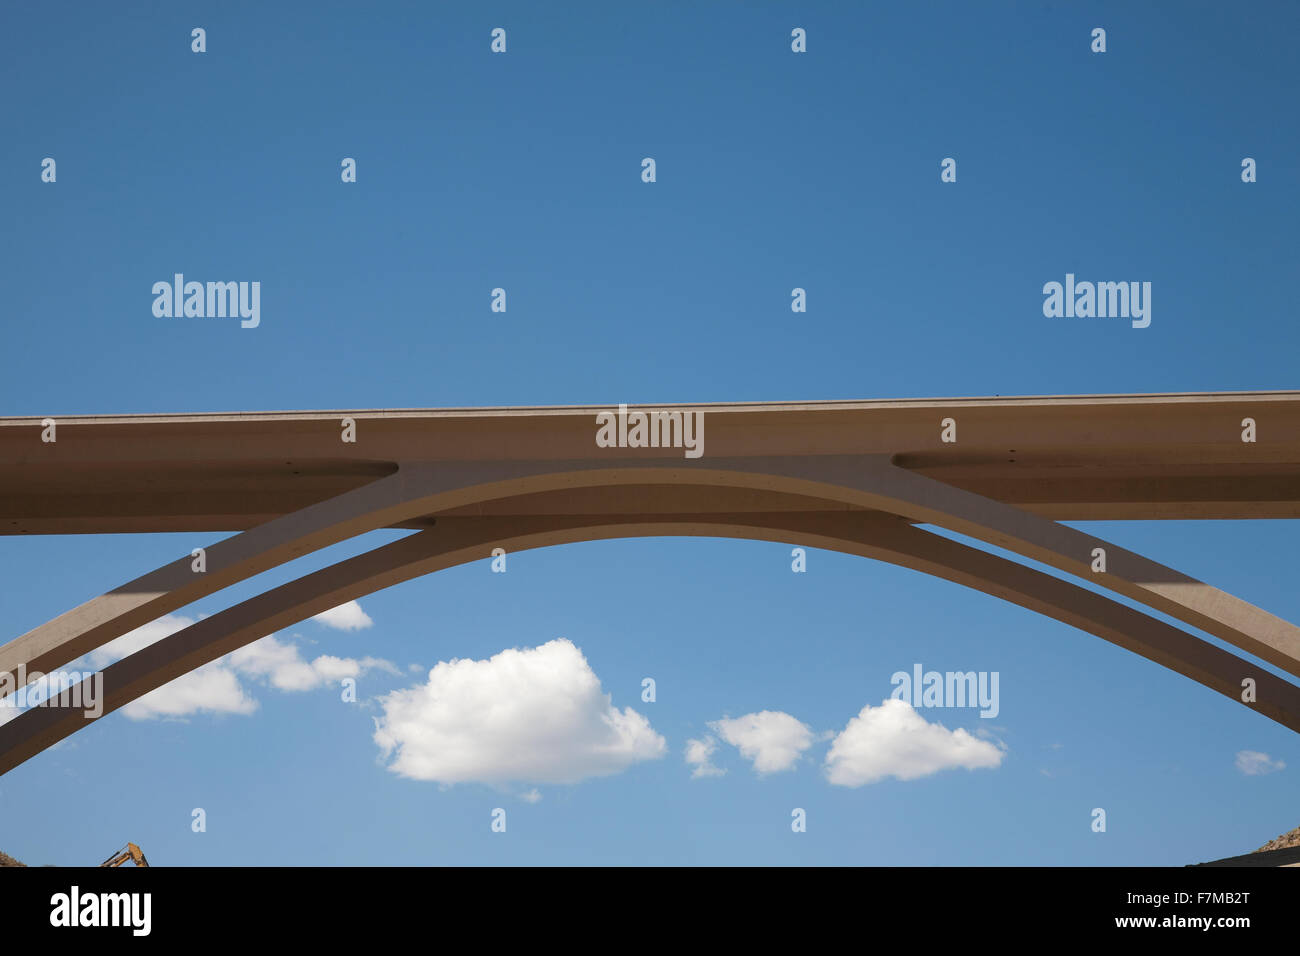 Galena Creed twin-span concrete arch bridge along Route 395 and Interstate 580 in Washoe County, Nevada. - Stock Image